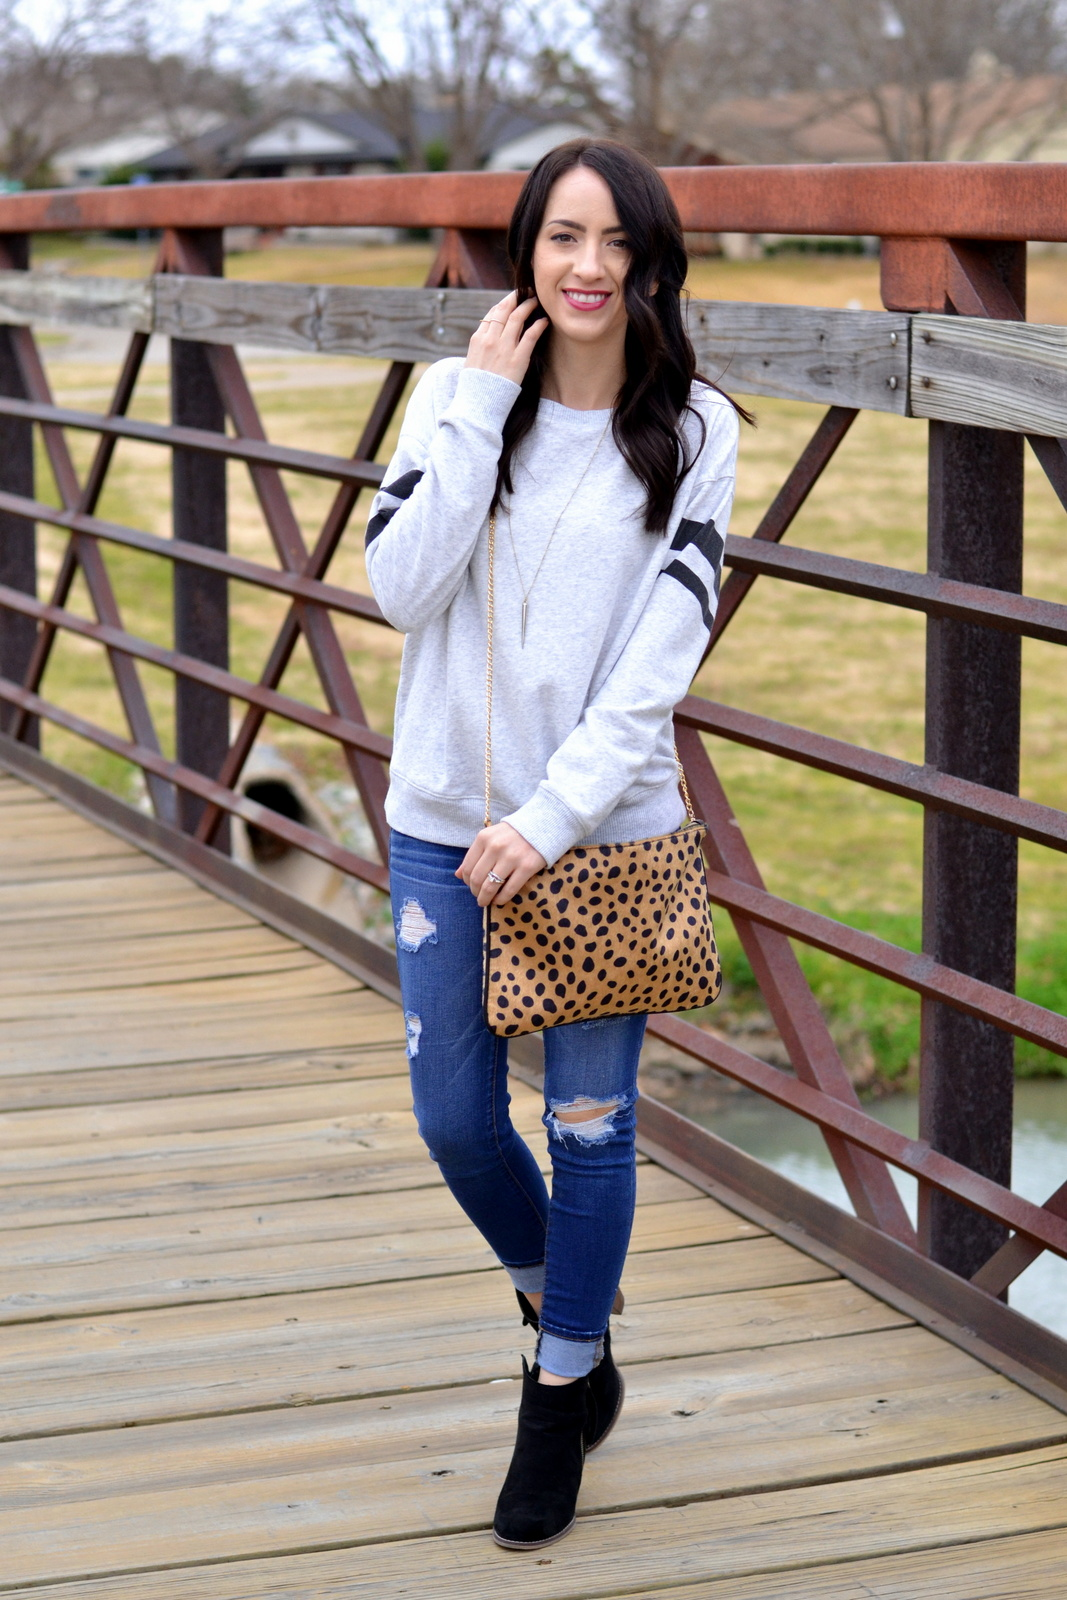 Leopard_Clutch_Casual_Sweatshirt_Loose_Waves